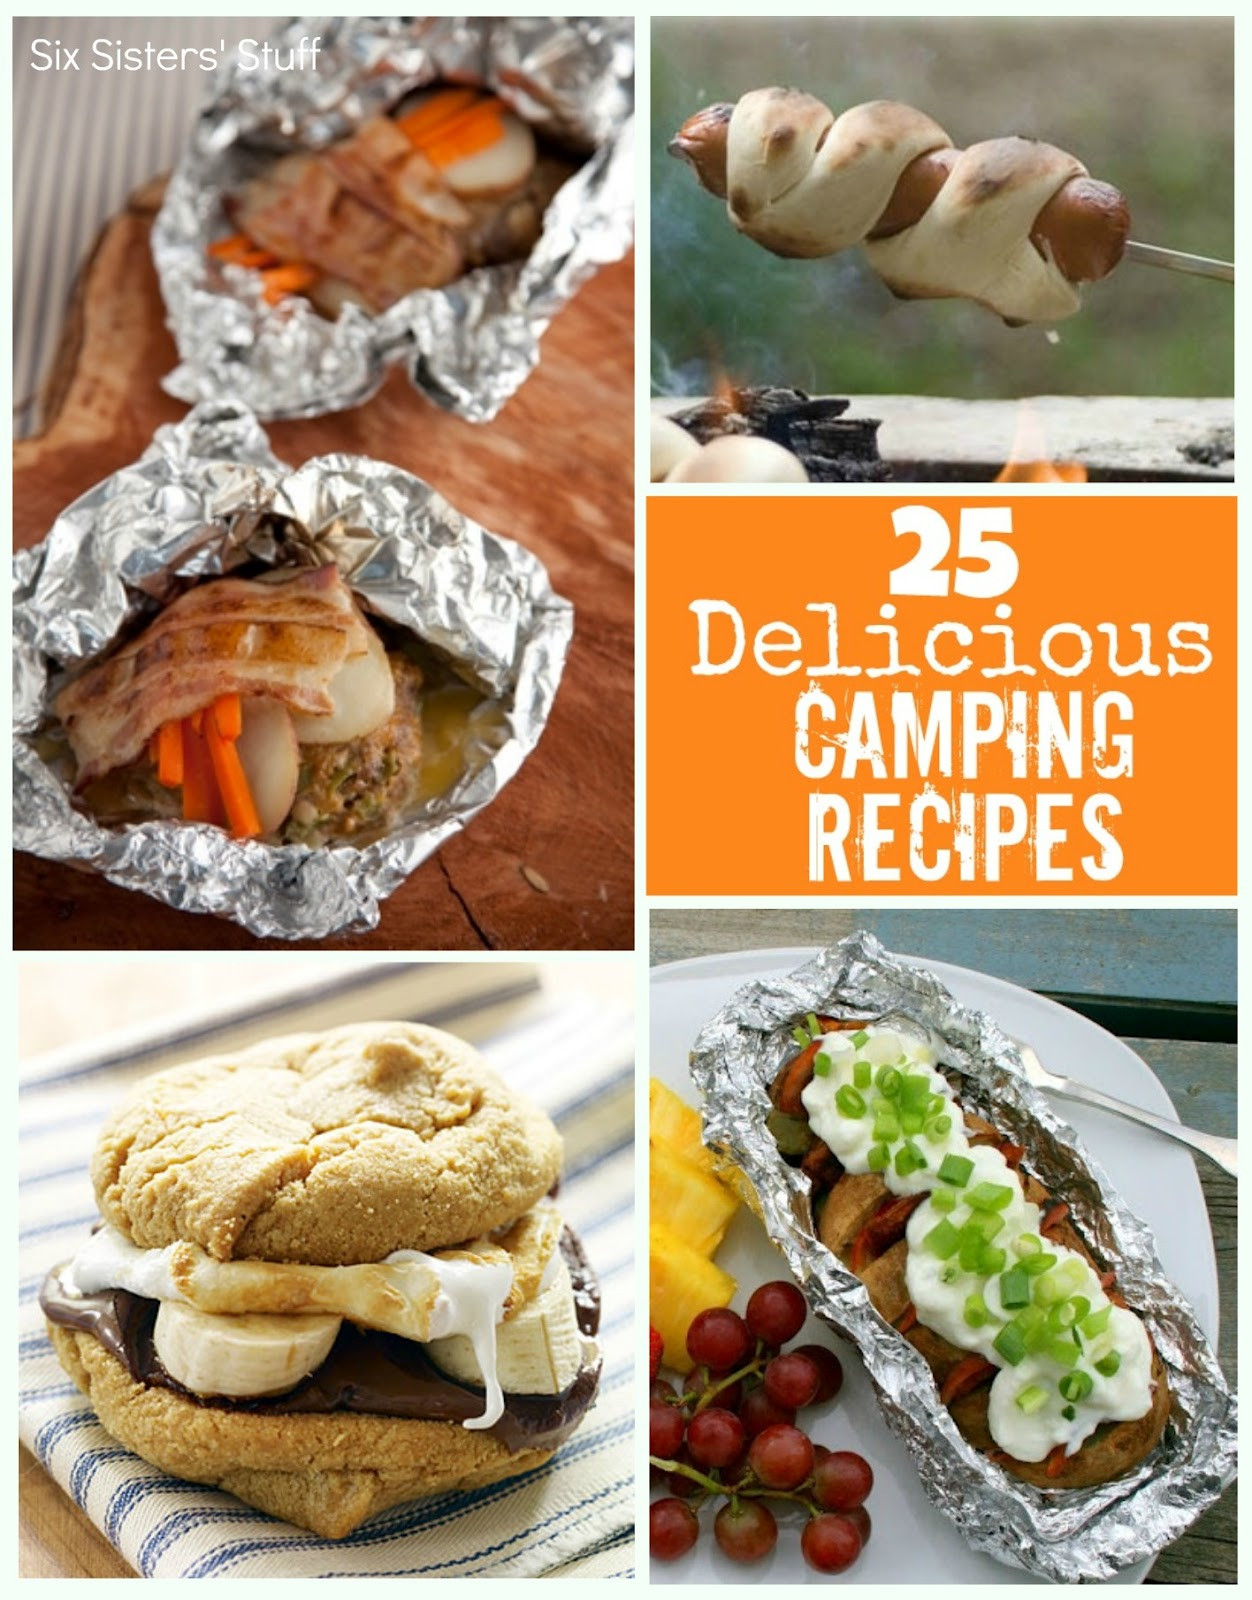 Easy Dinners For Camping  25 Delicious Camping Recipes Six Sisters Stuff